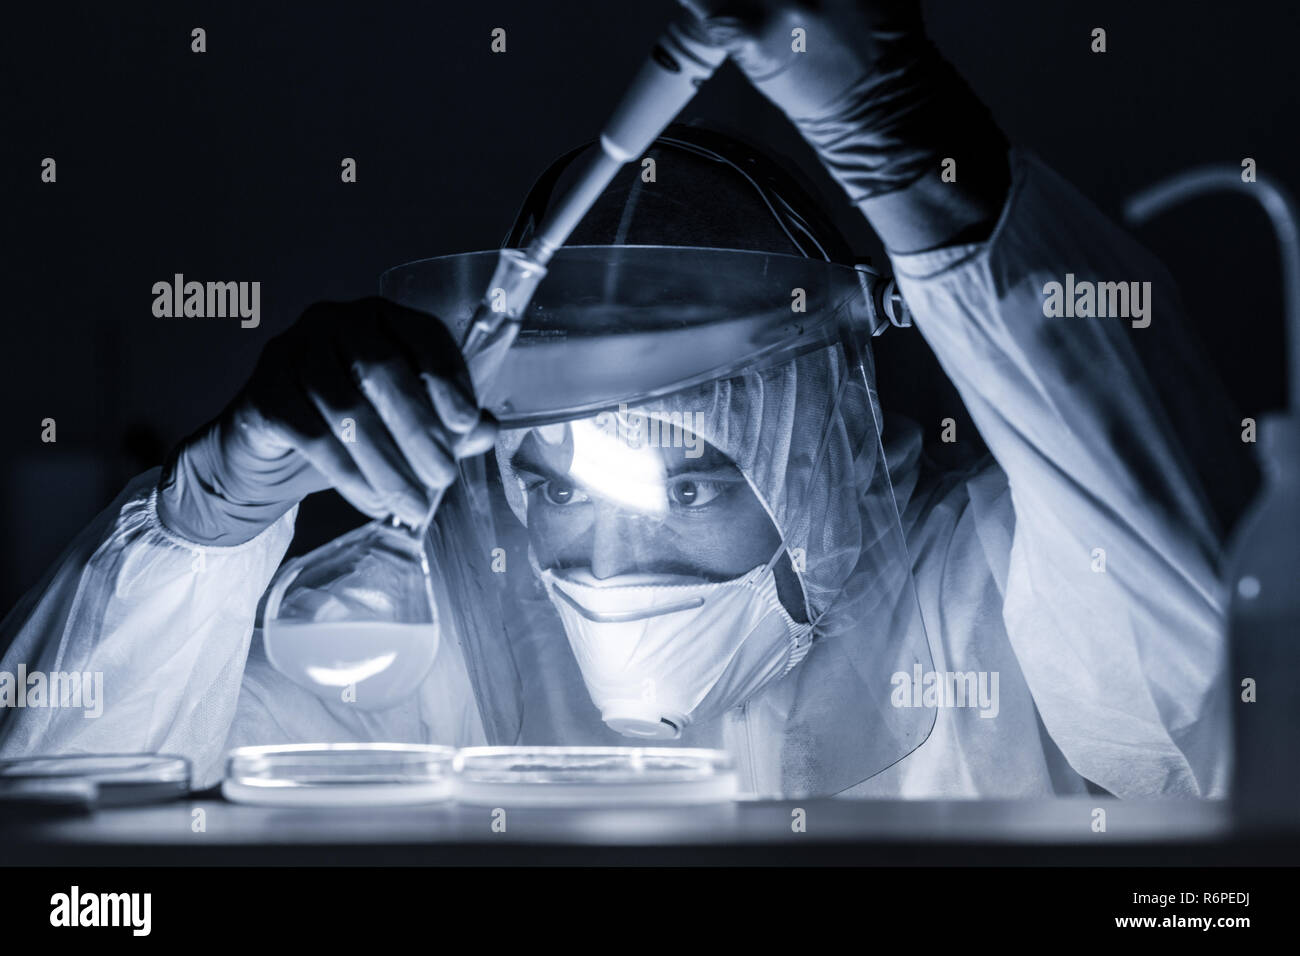 Life scientist researching in bio hazard laboratory. High degree of protection work. - Stock Image